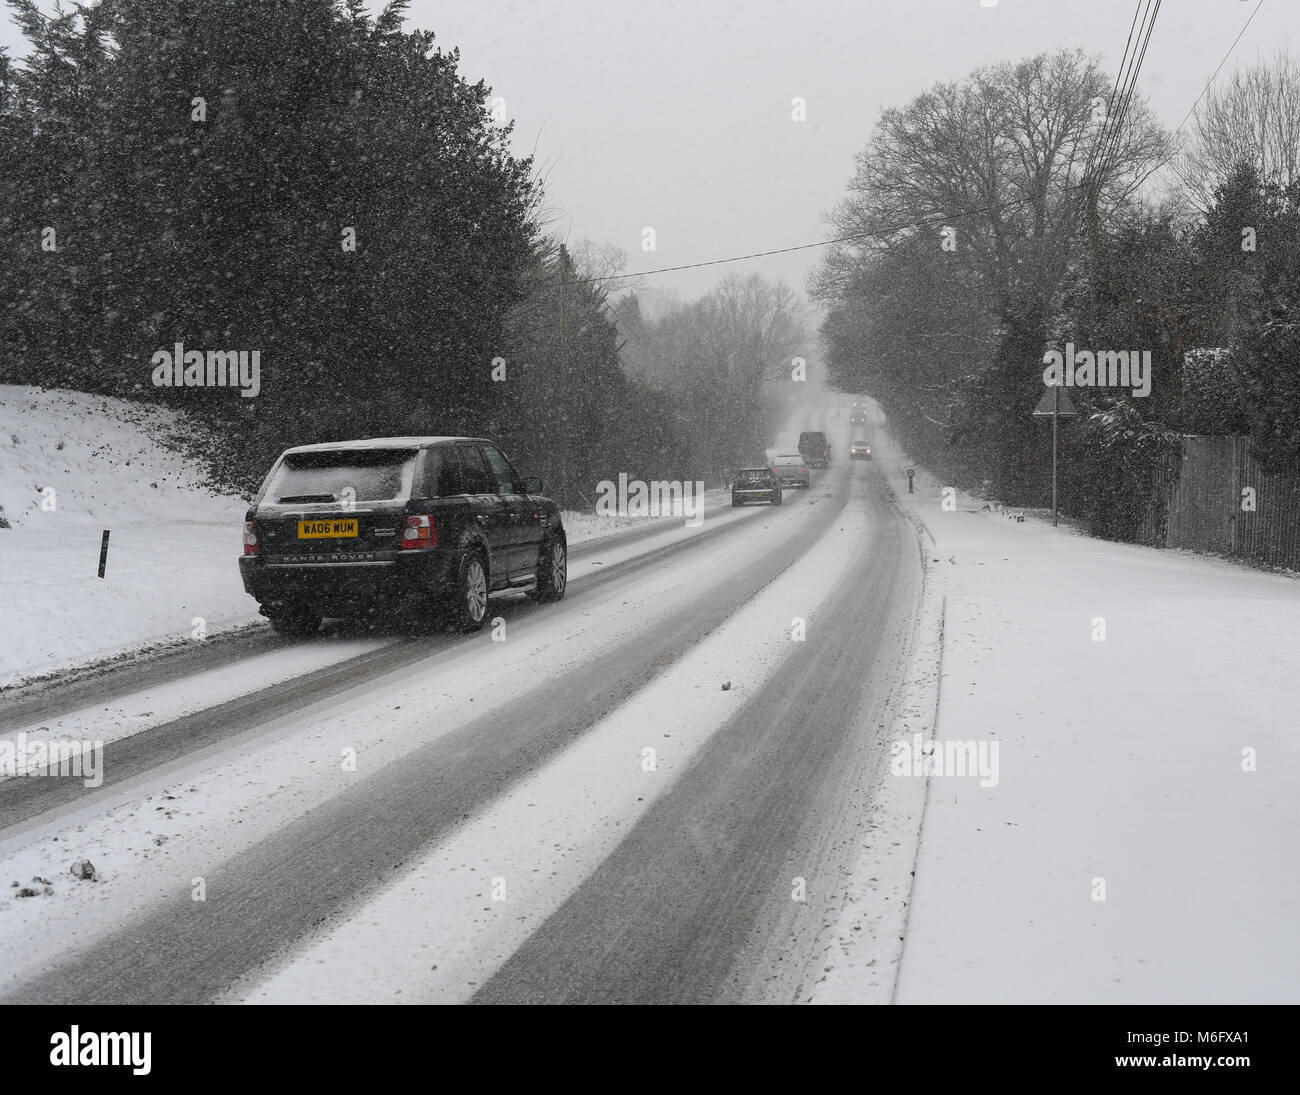 A four wheel drive black Range Rover makes its way along a snow covered A36 main road towards Salisbury in treacherous - Stock Image